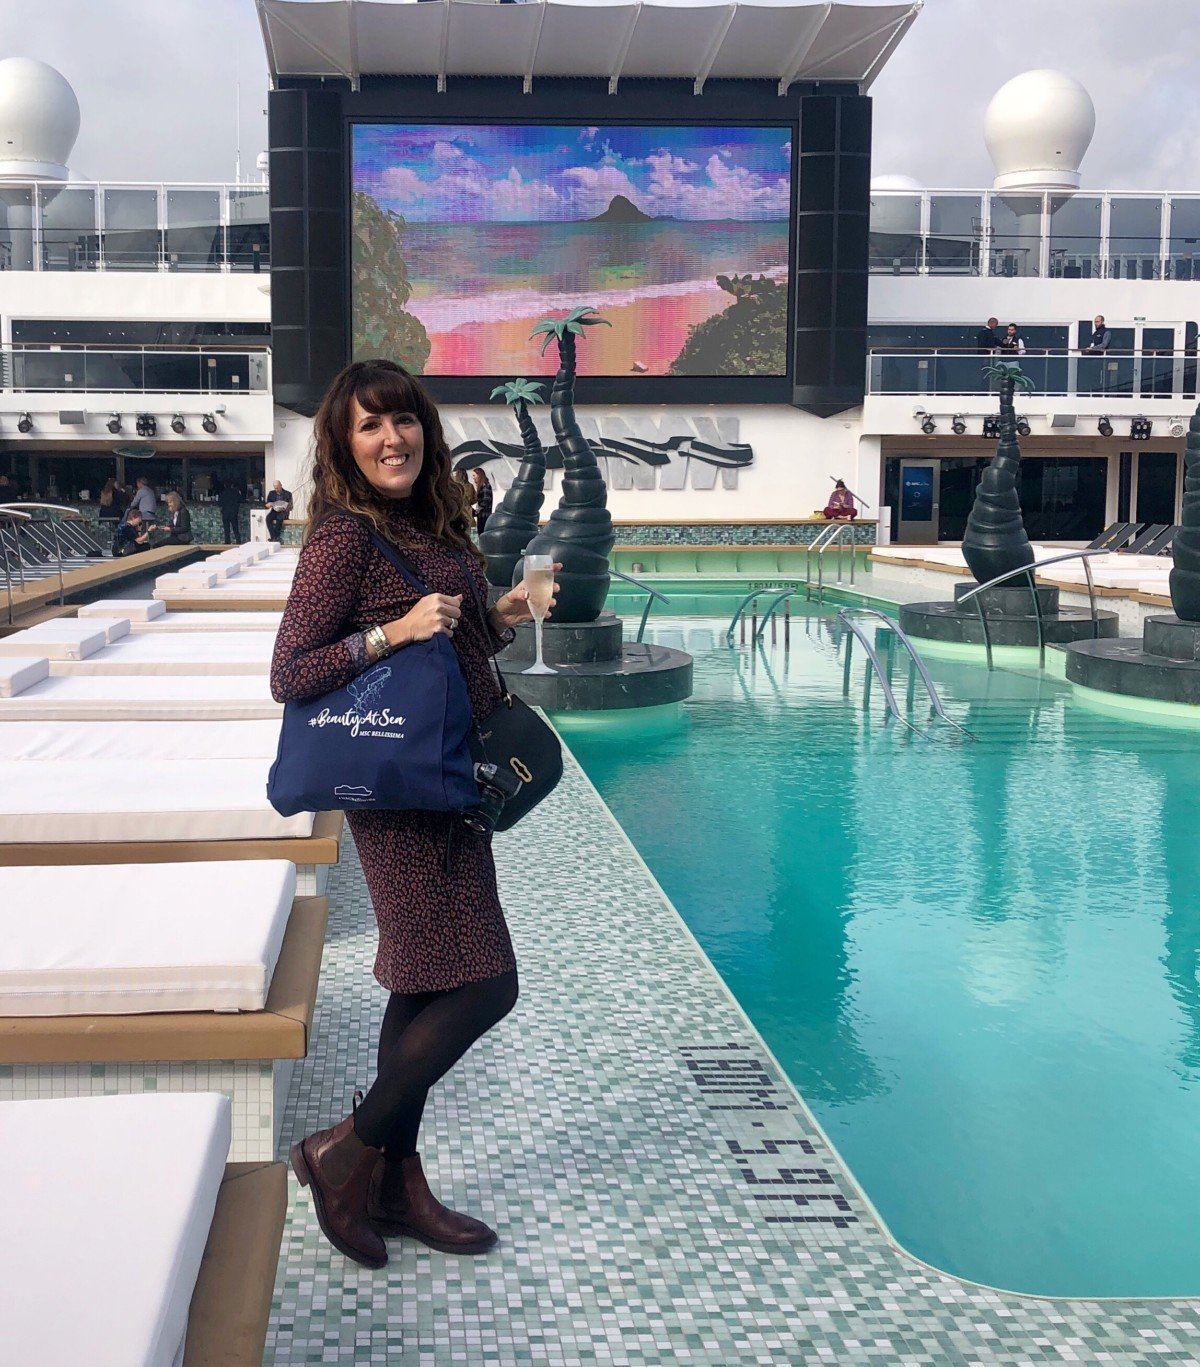 MSC Bellissima naming celebration onboard by the pool